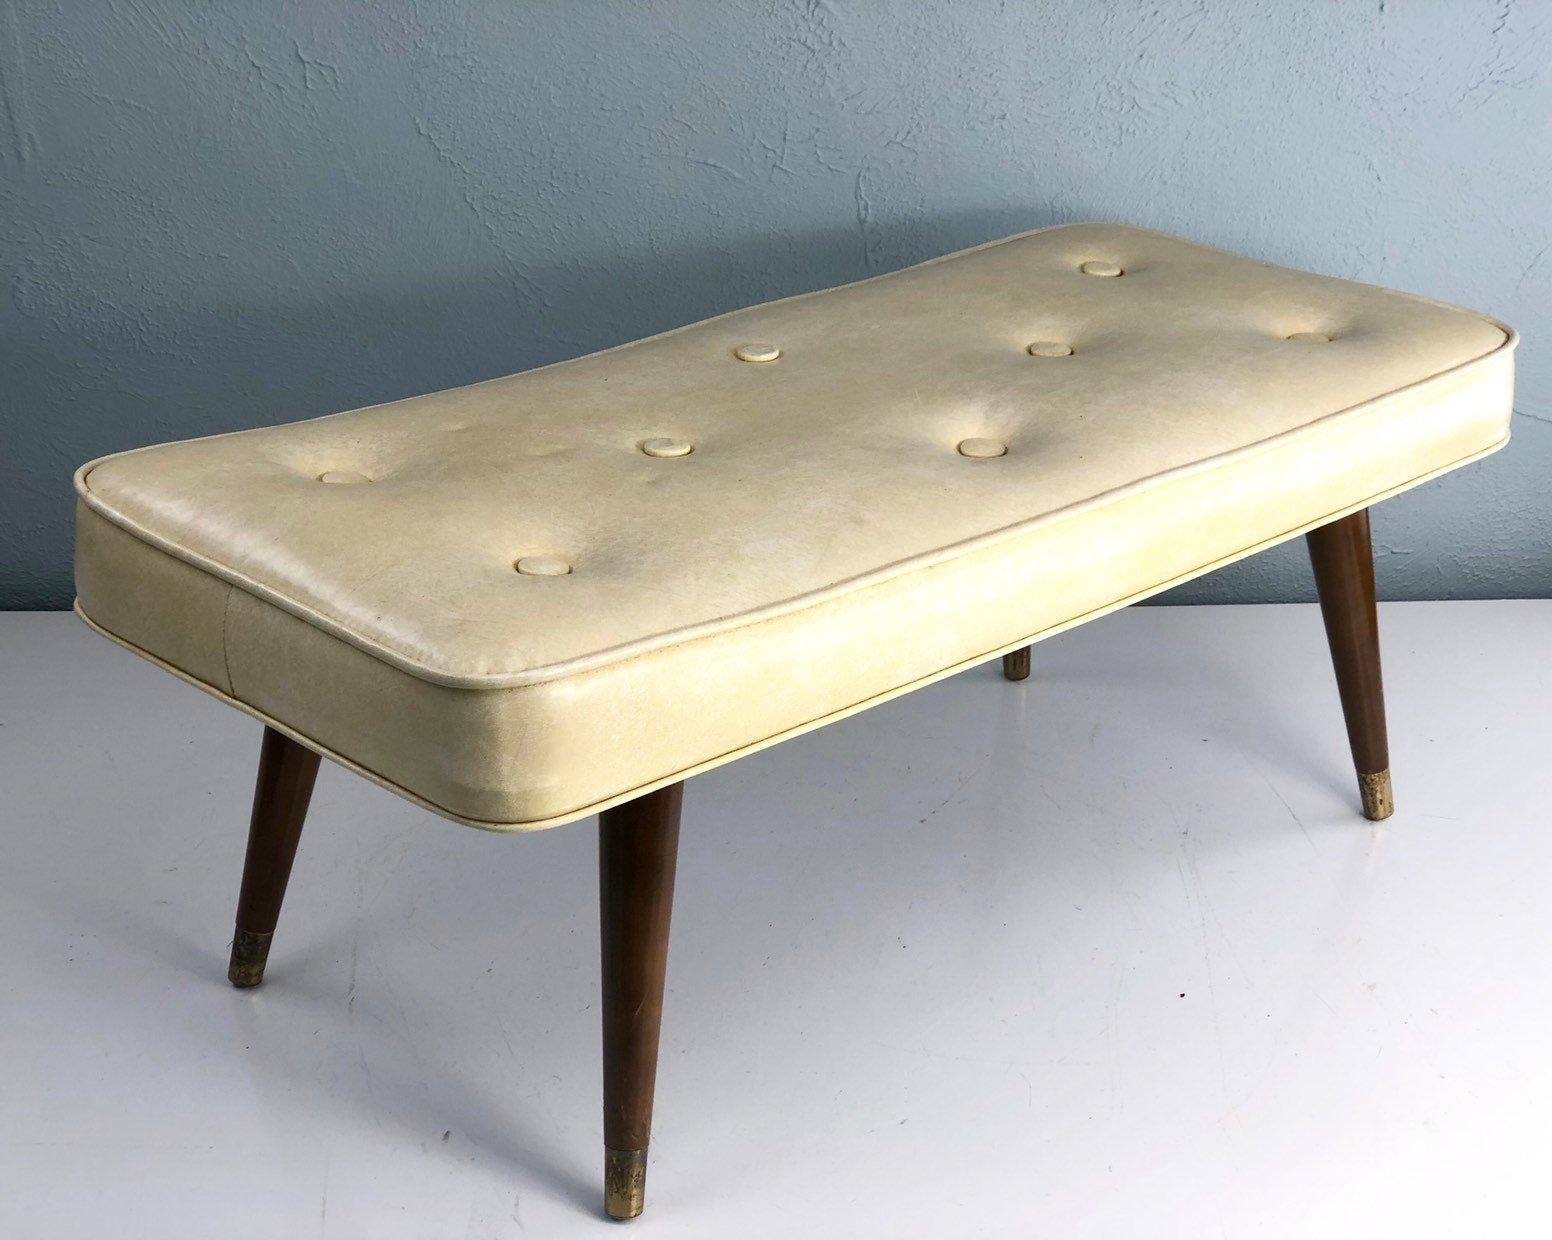 Extra Long Vintage Mid Century Modern Footstool Bench With Tapered Legs Foot Stool Atomic Mid C Leather Chair With Ottoman Foot Rest Ottoman Modern Footstool